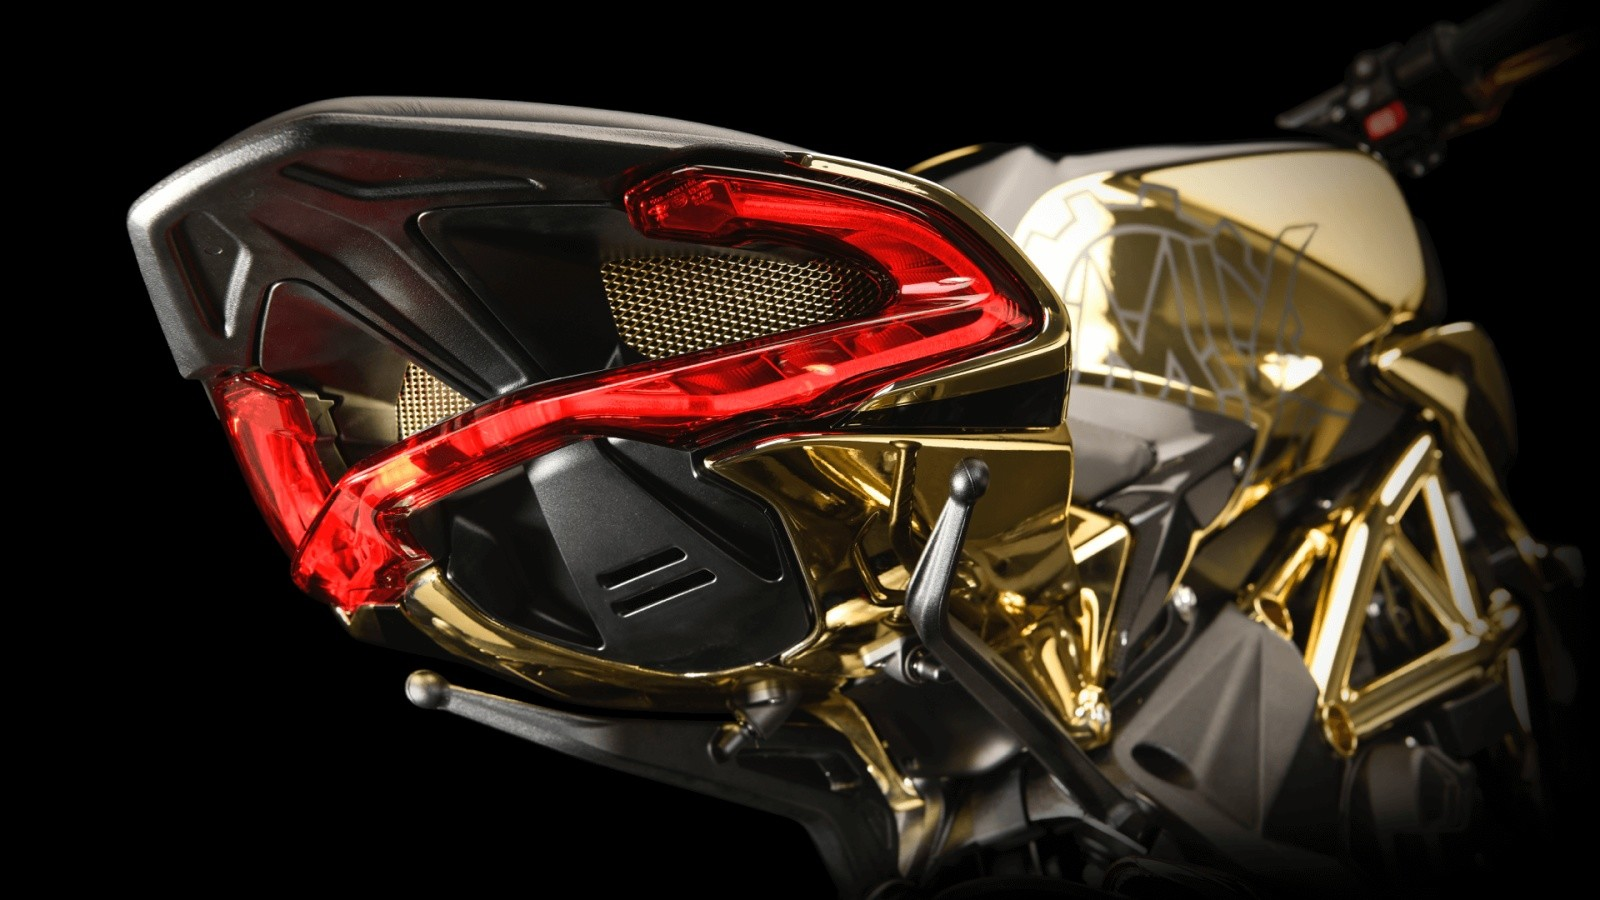 Foto de MV Agusta Dragster RC Shining Gold 2019 (10/14)